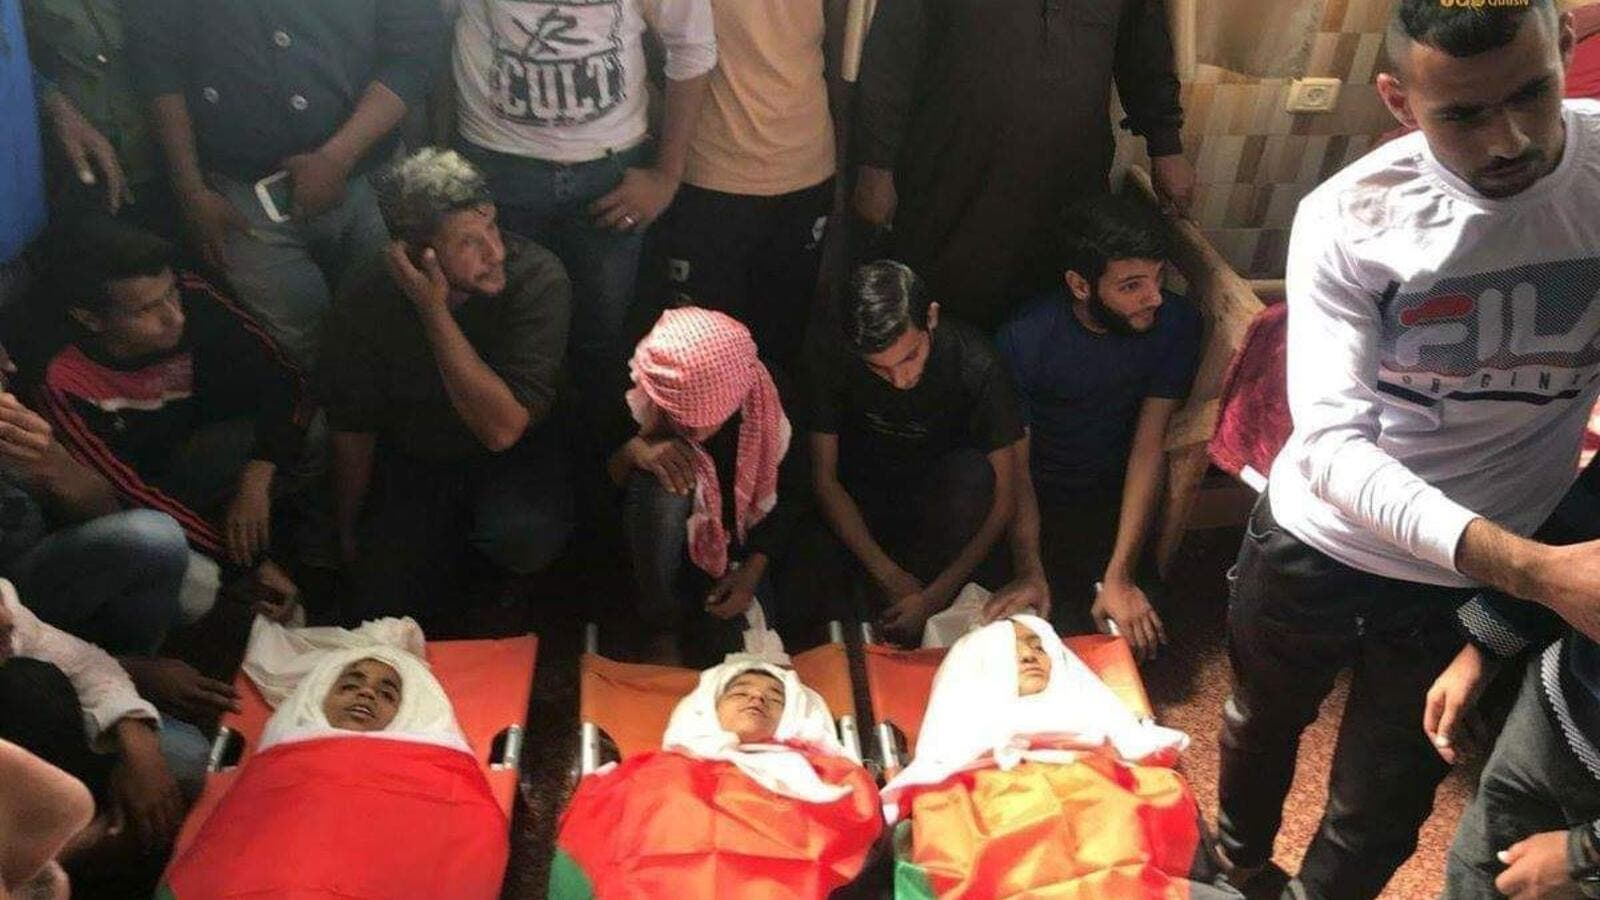 Farewell of the 3 Palestinian children (under 13 years old) who were killed in cold blood by an Israeli drone airstrike in Gaza. (Twitter)